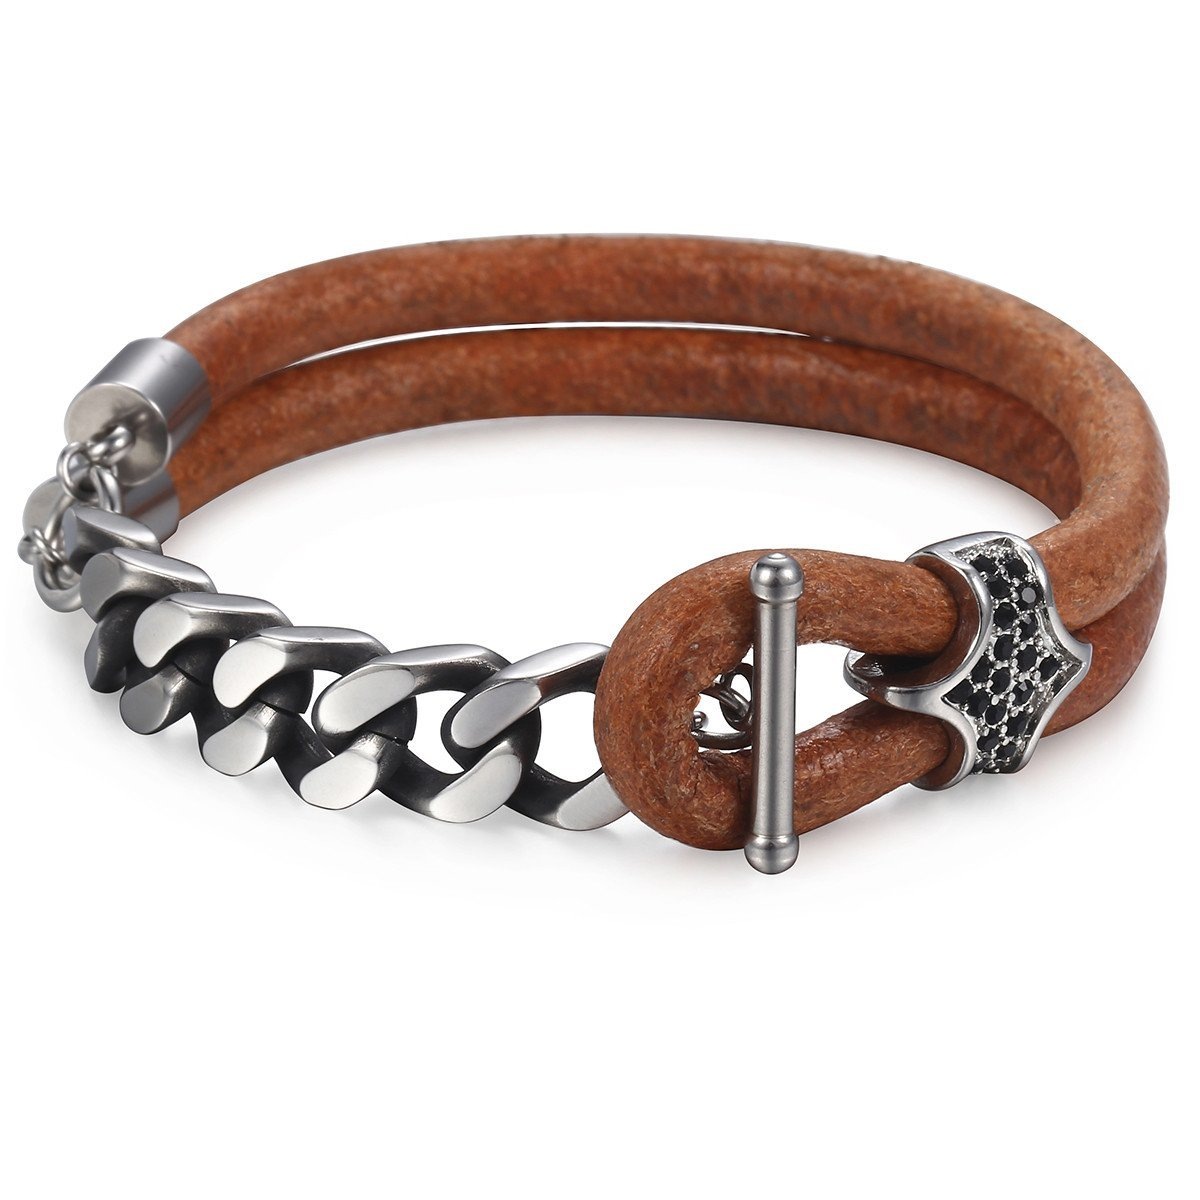 Trendsmax Men's Leather Bracelet Black CZ Charm Stainless Steel Cuban Link Chain Bracelet Gifts for Men 8inch